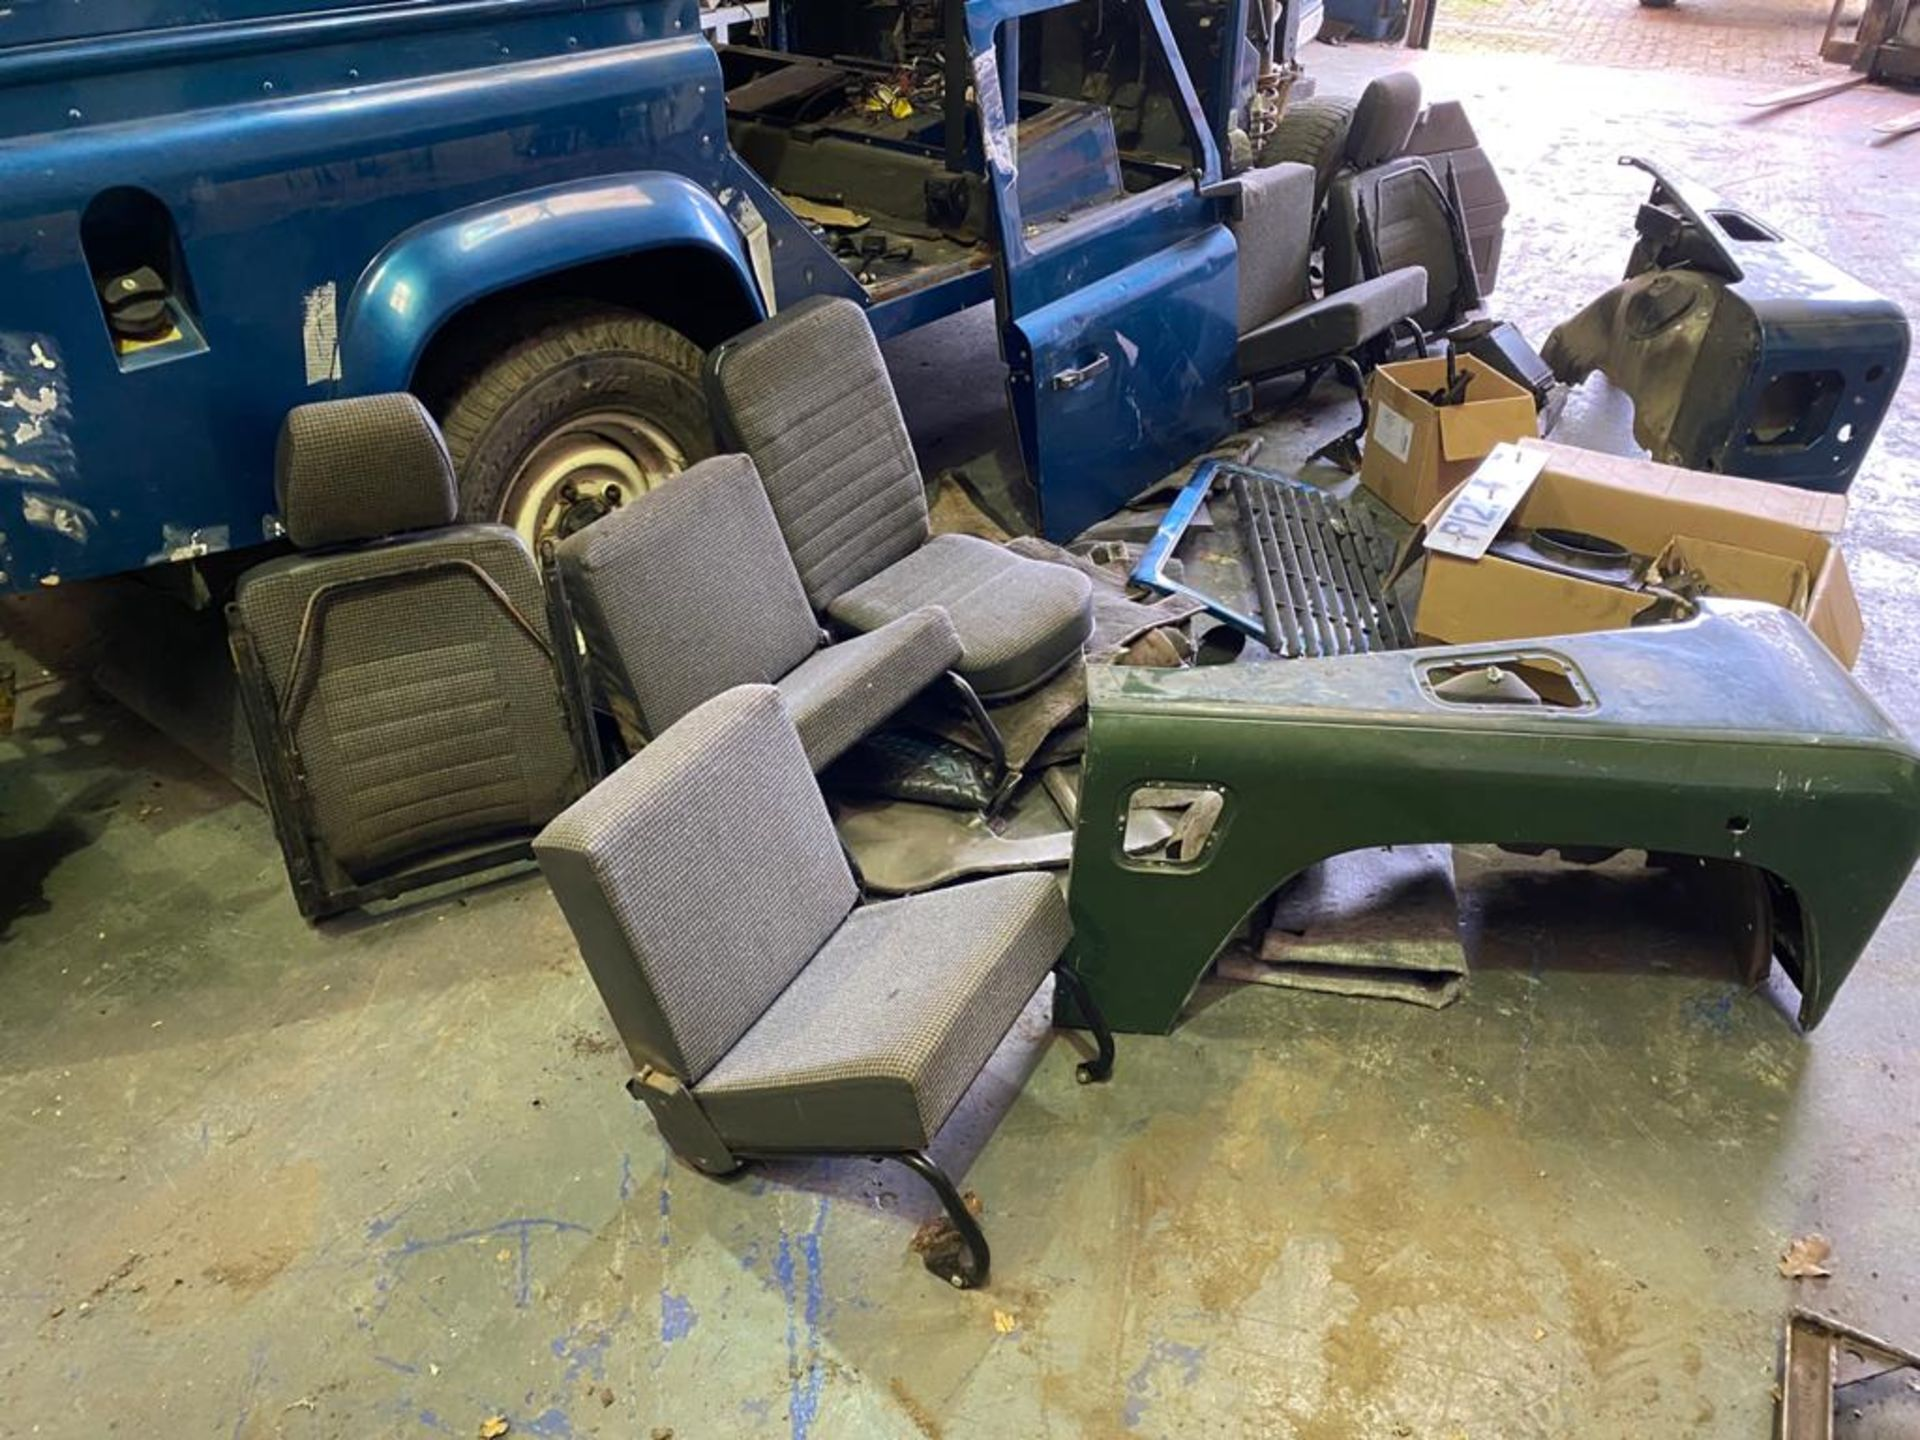 Land Rover 110 County, 300 TDI Engine Appears Mostly Complete - No Bumper, Bonnet, Glass etc As - Image 8 of 26